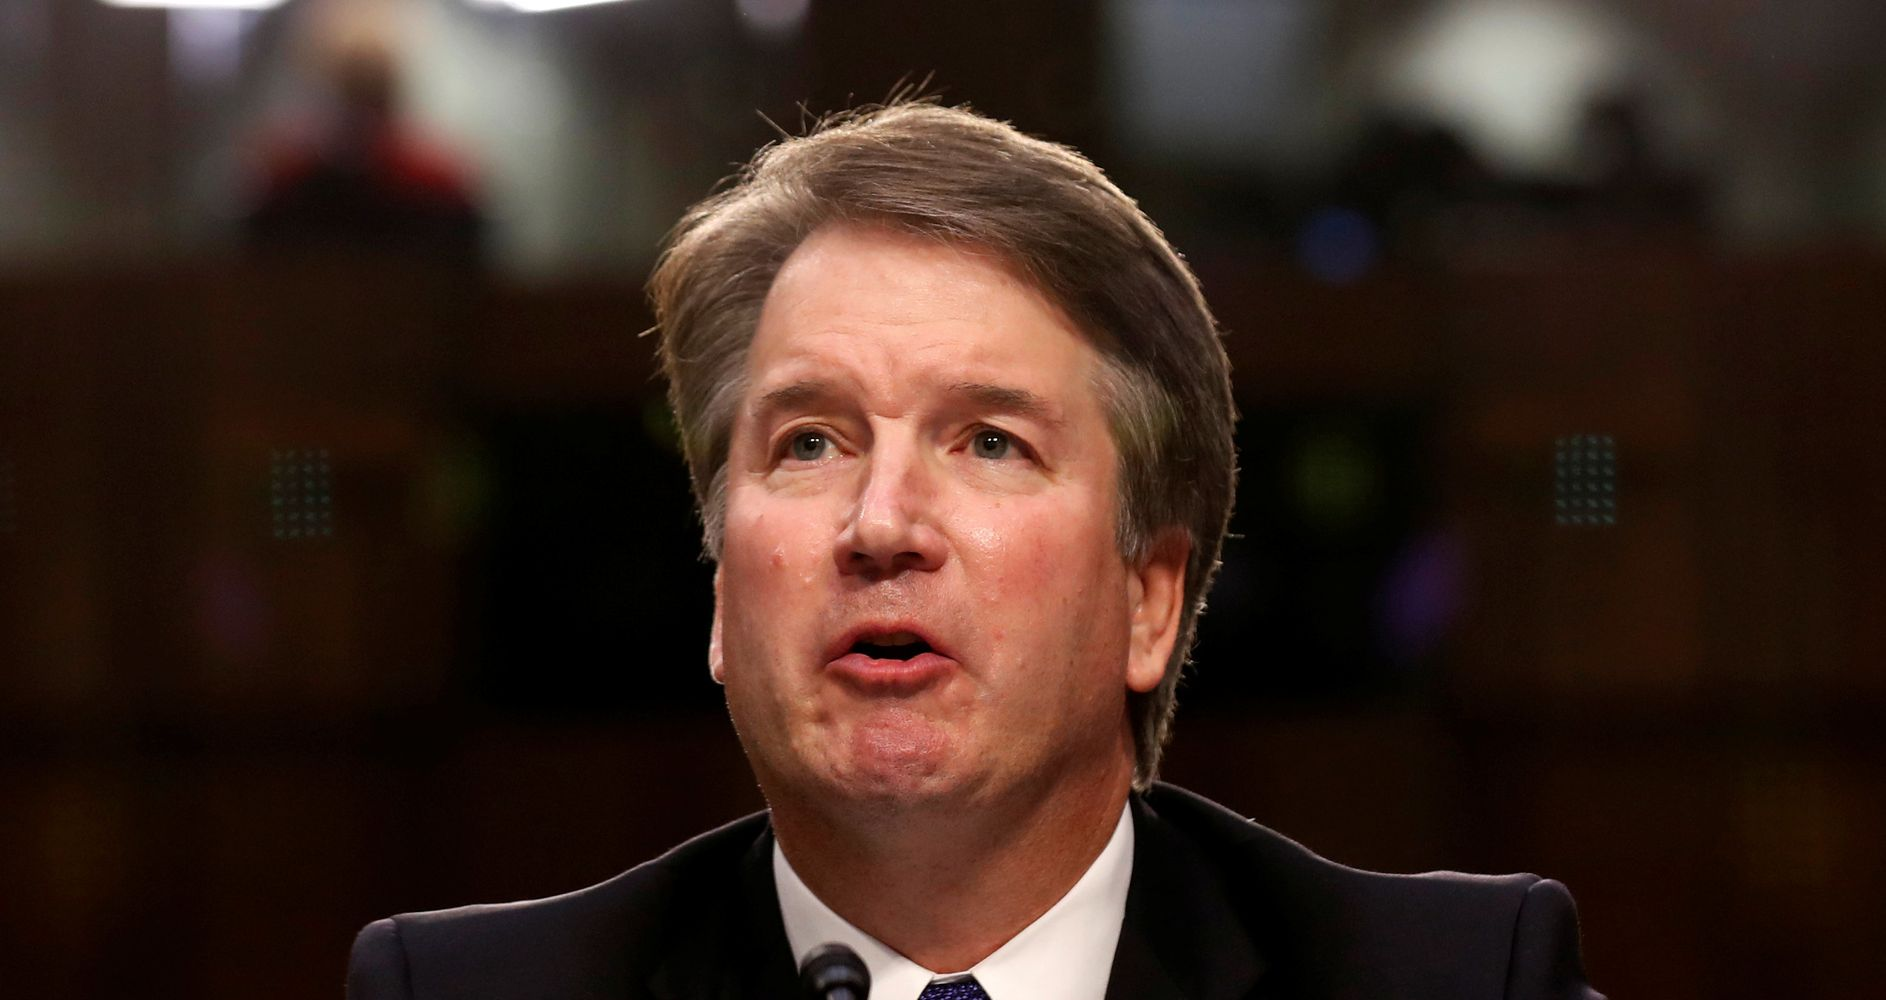 The Man Who Smeared Anita Hill Previews What Christine Blasey Ford Will Face in Senate | HuffPost